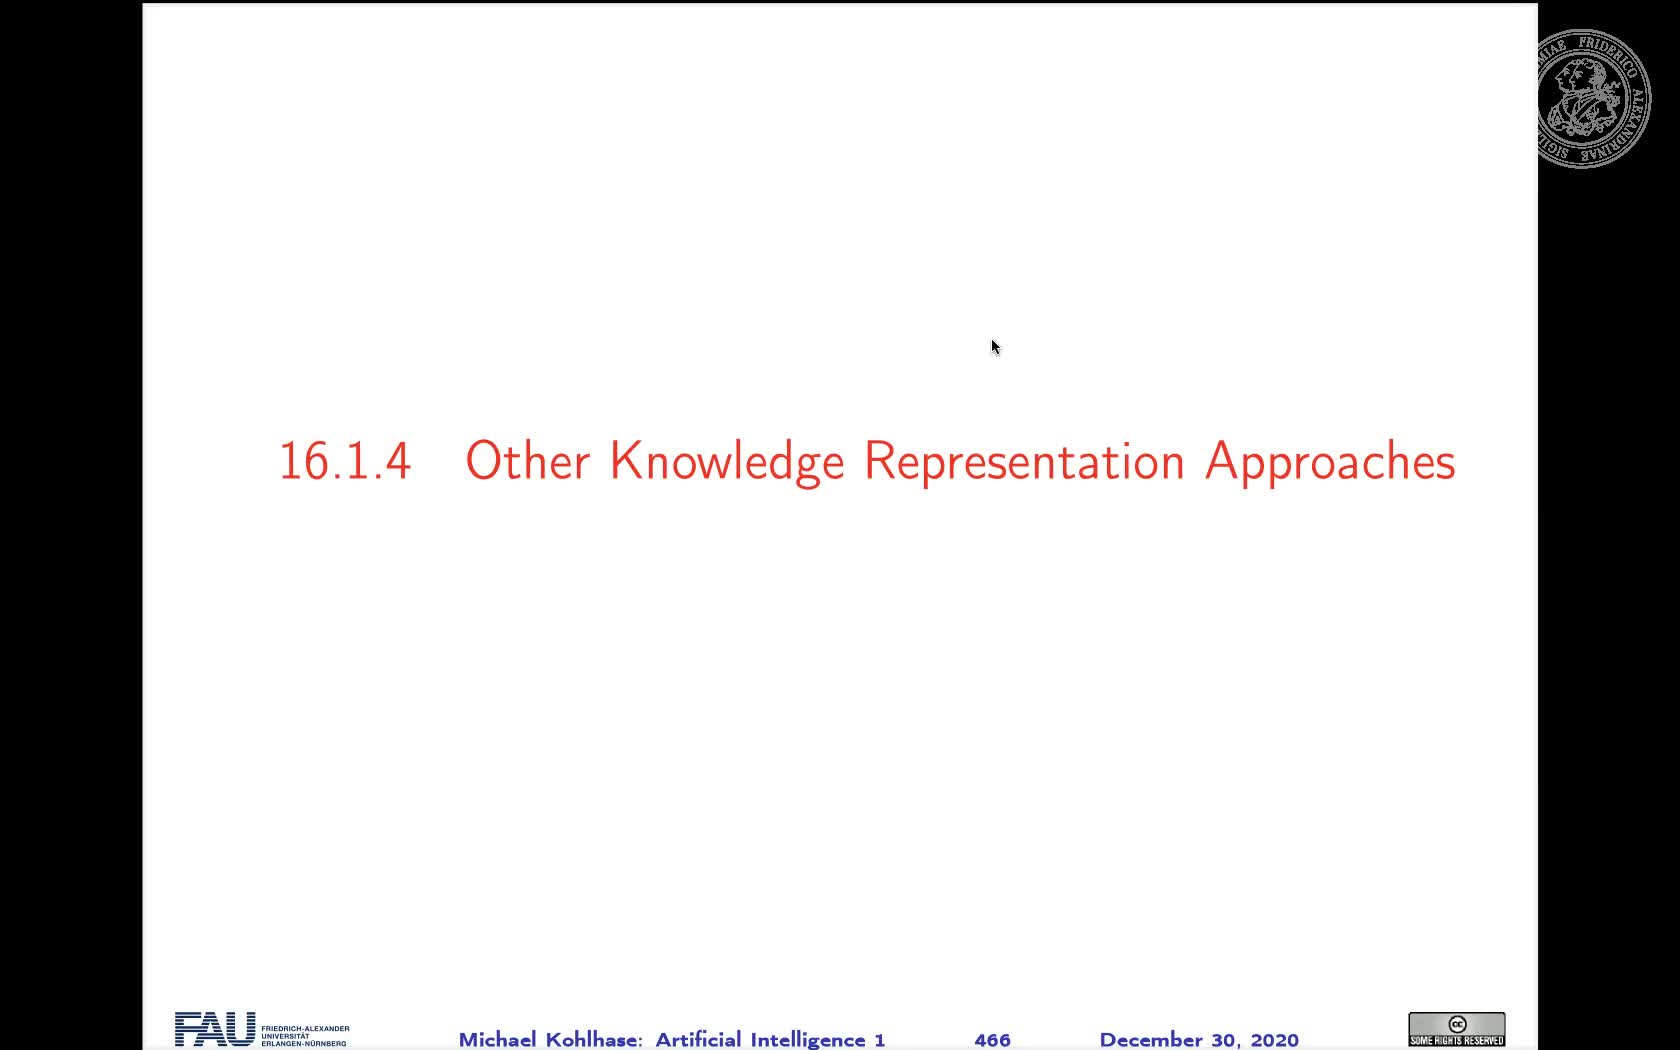 15.1.4 Other Knowledge Representation Approaches preview image